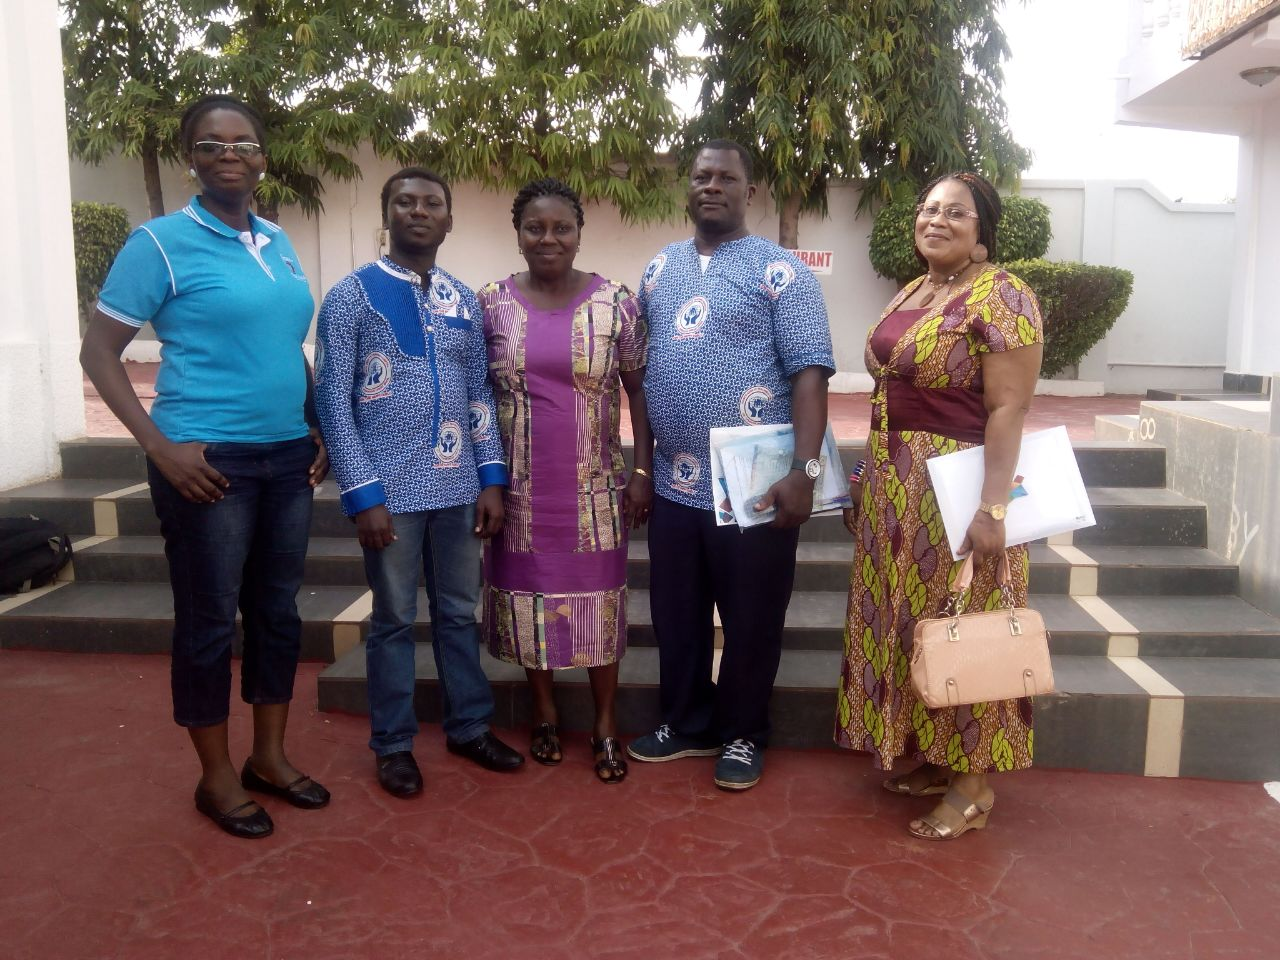 From left to right – Mrs Lydia Adu Opare, Mr David Ofosu Ntiamoah, Mrs Juliana Boakye, Mr Godwill Dzikunoo, Mrs Mariam Akpaloo